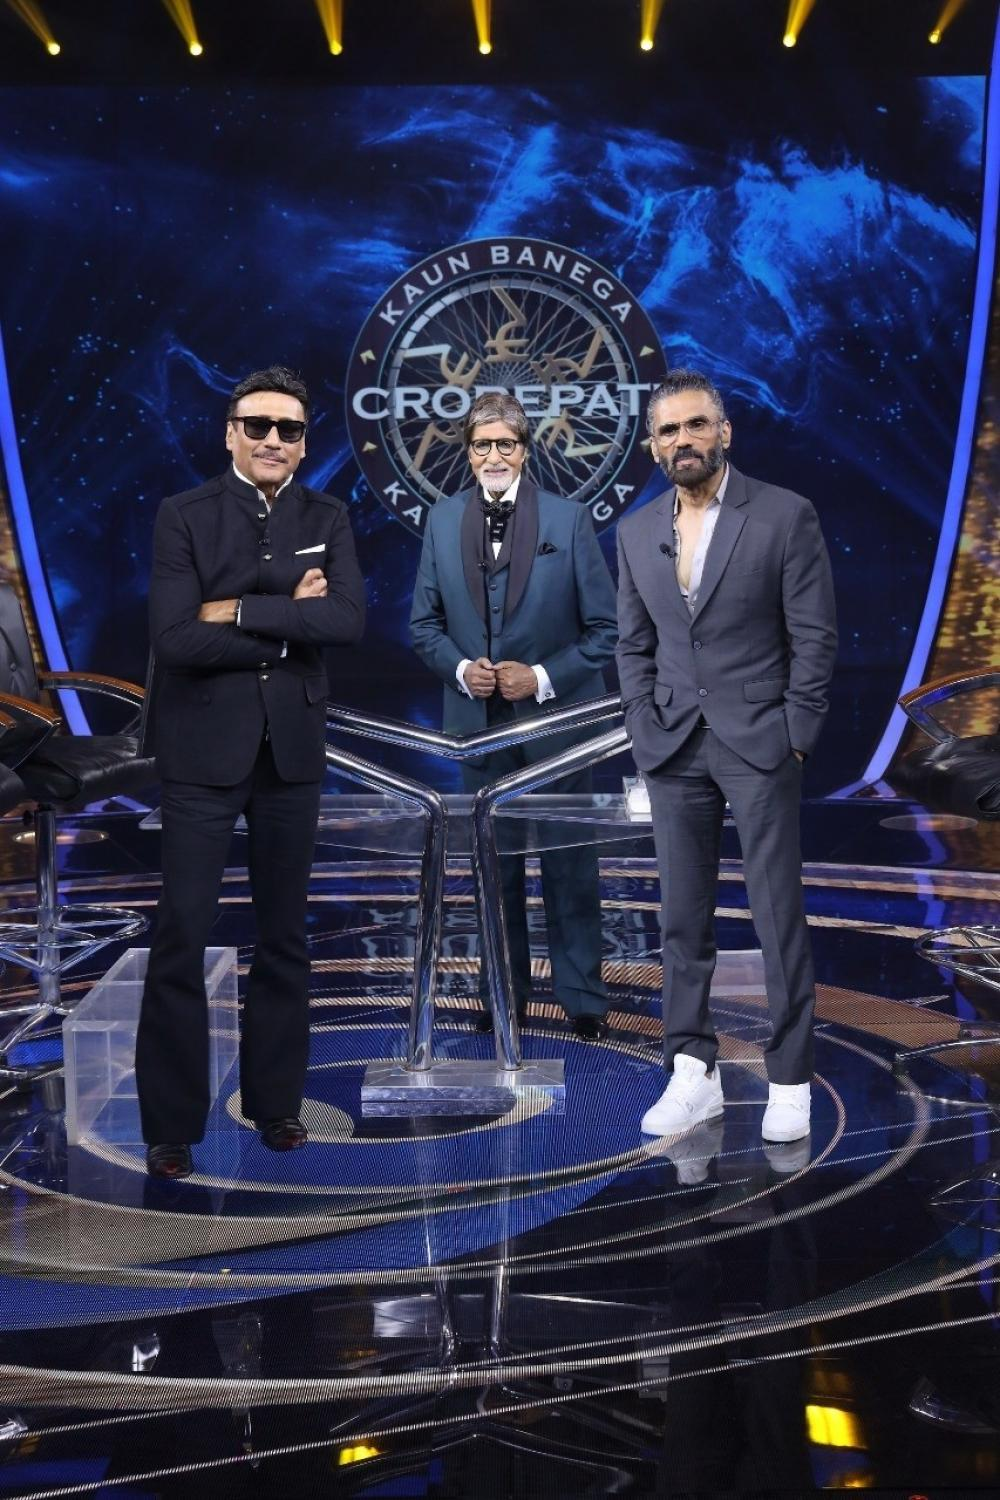 The Weekend Leader - Jackie Shroff says he picked up 'Beedu' lingo from Big B